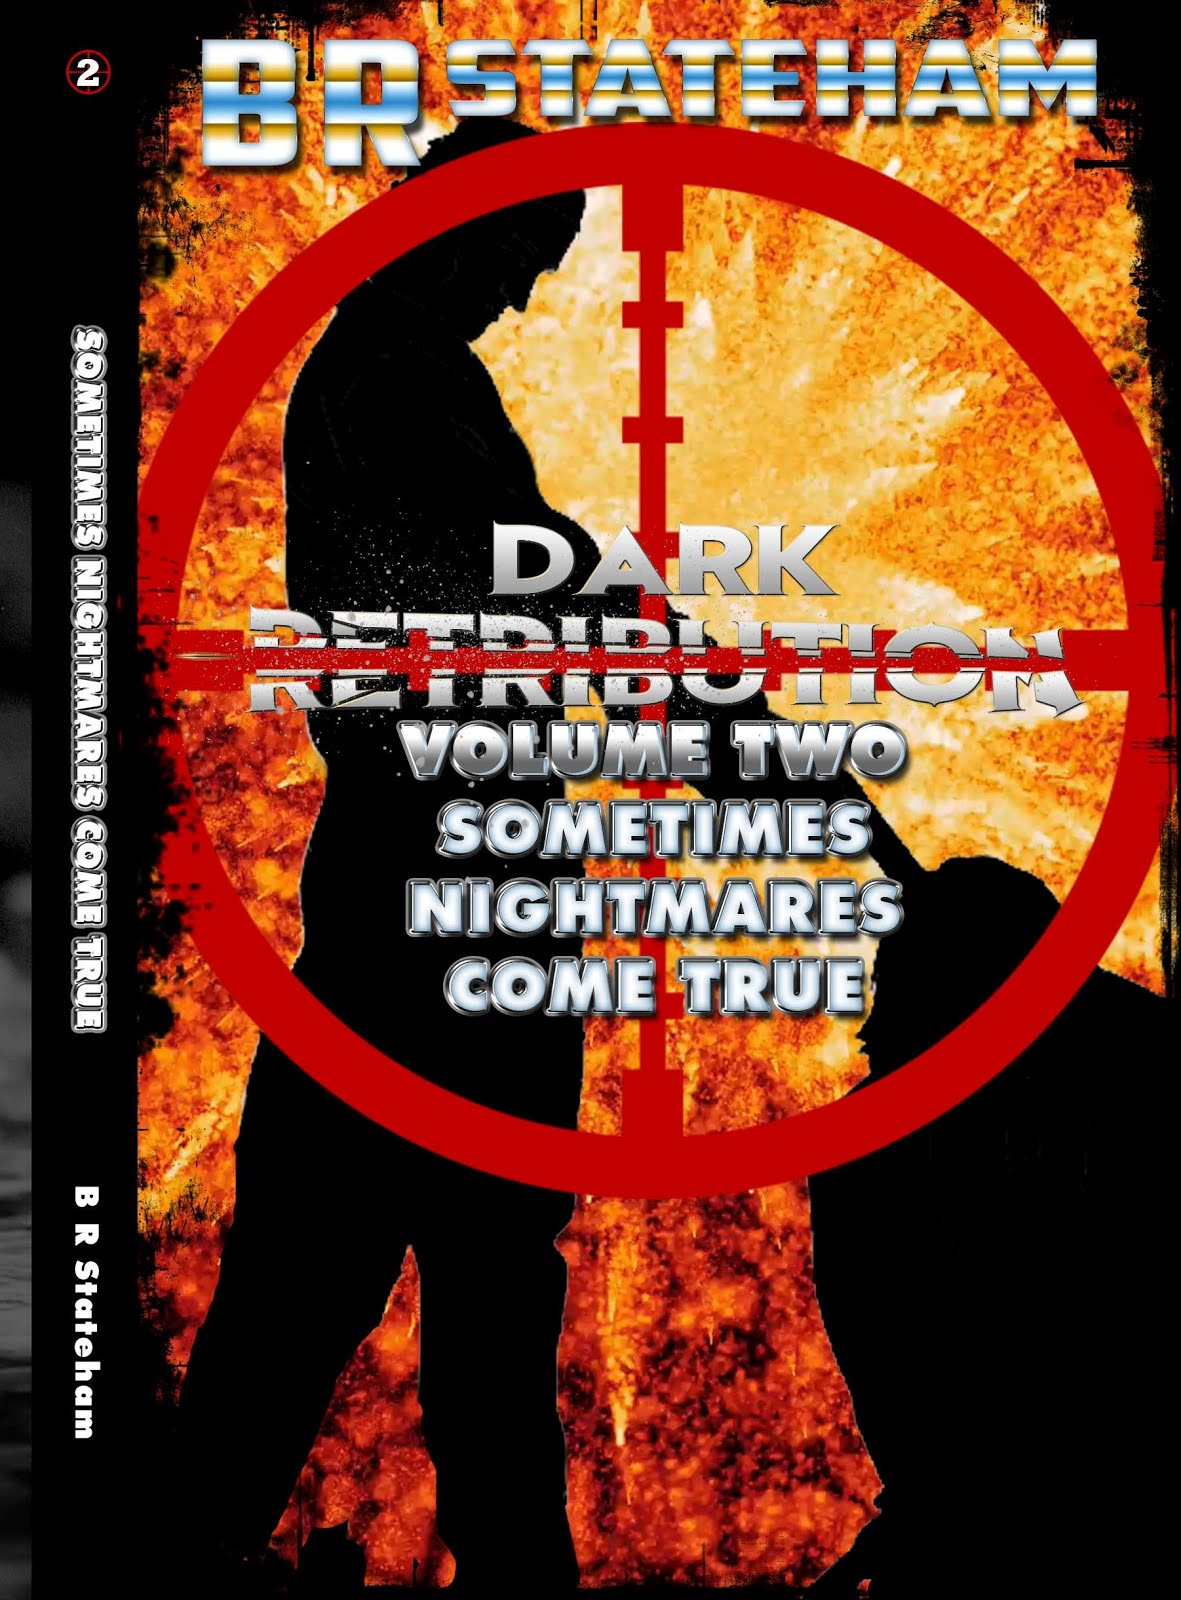 Dark Retribution, volume II: Sometimes Nightmares Come True